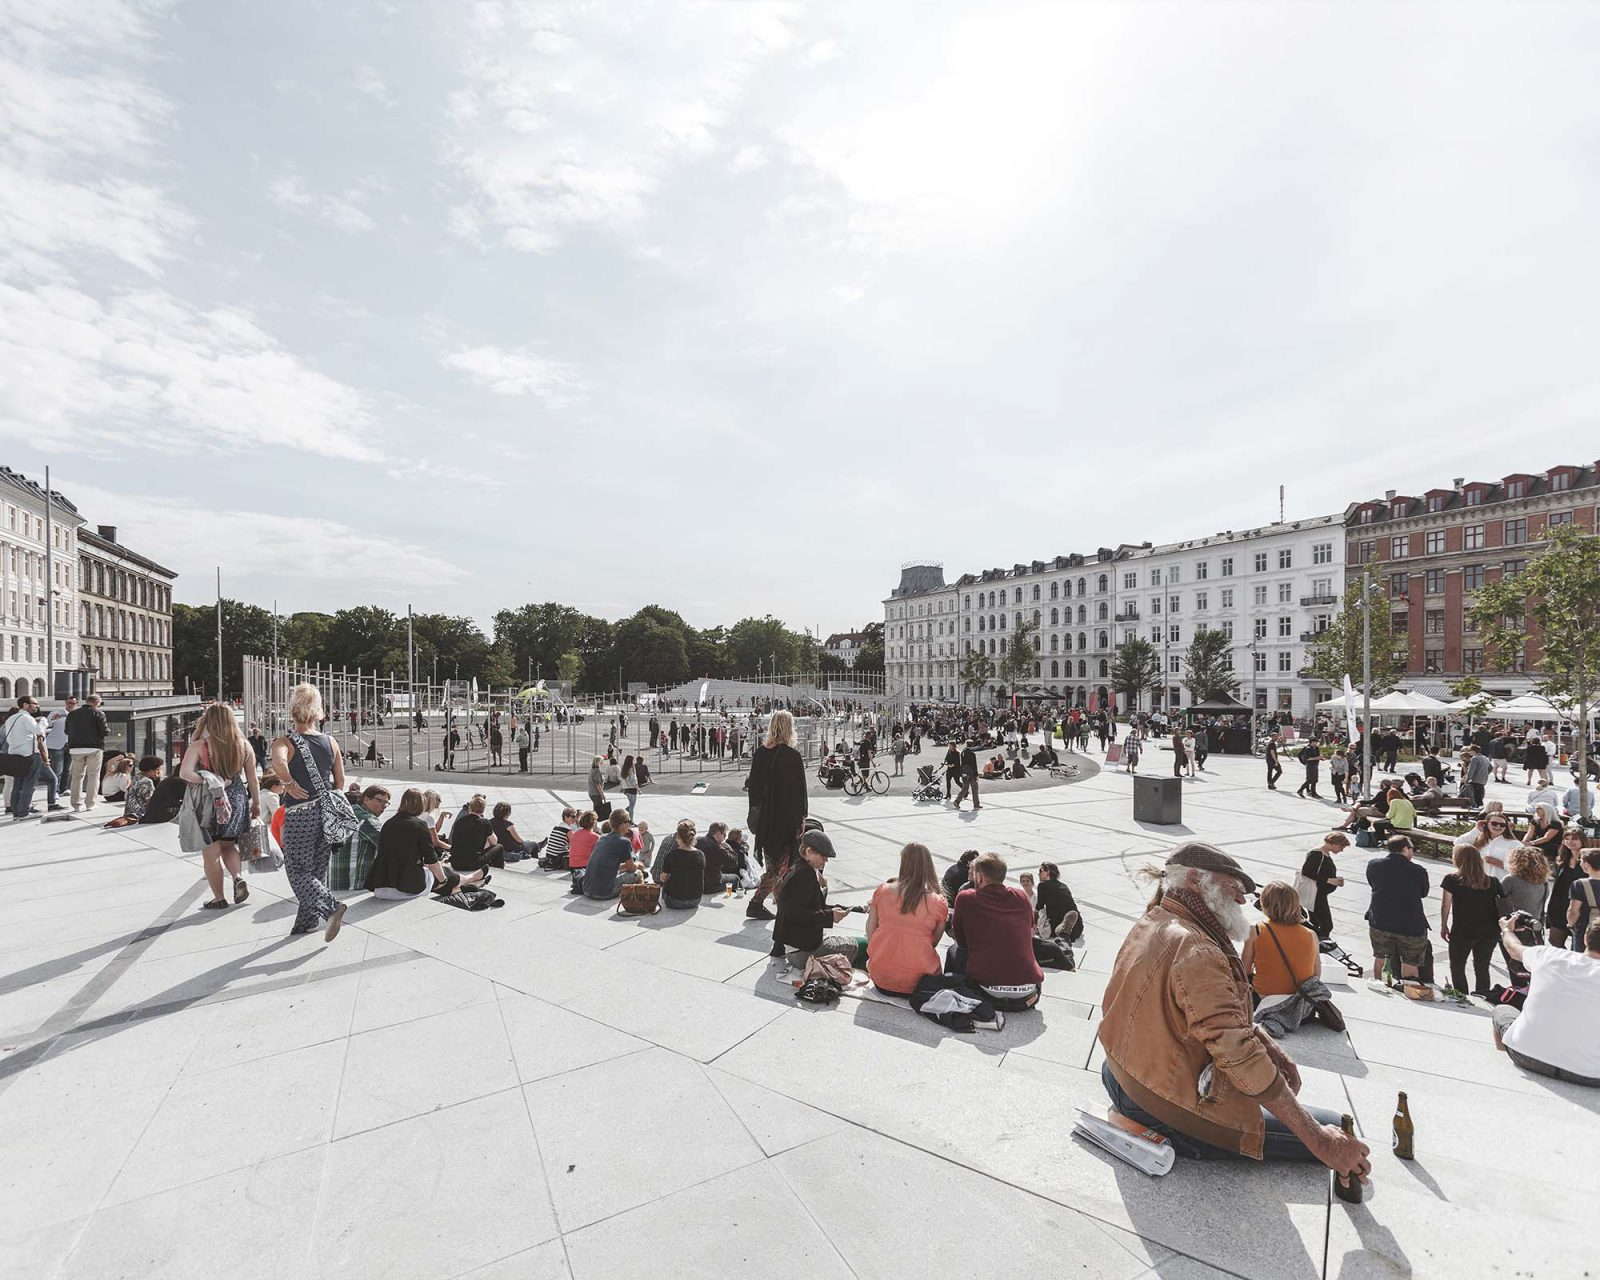 Israel Plads. Renewal of Israel's Square, size: 12.500 square metre. The new Israels Plads consists of a folded surface floating above the ground - like a flying carpet. The square, or surface, hovers between two worlds: the city and the neighboring Ørsted Park.